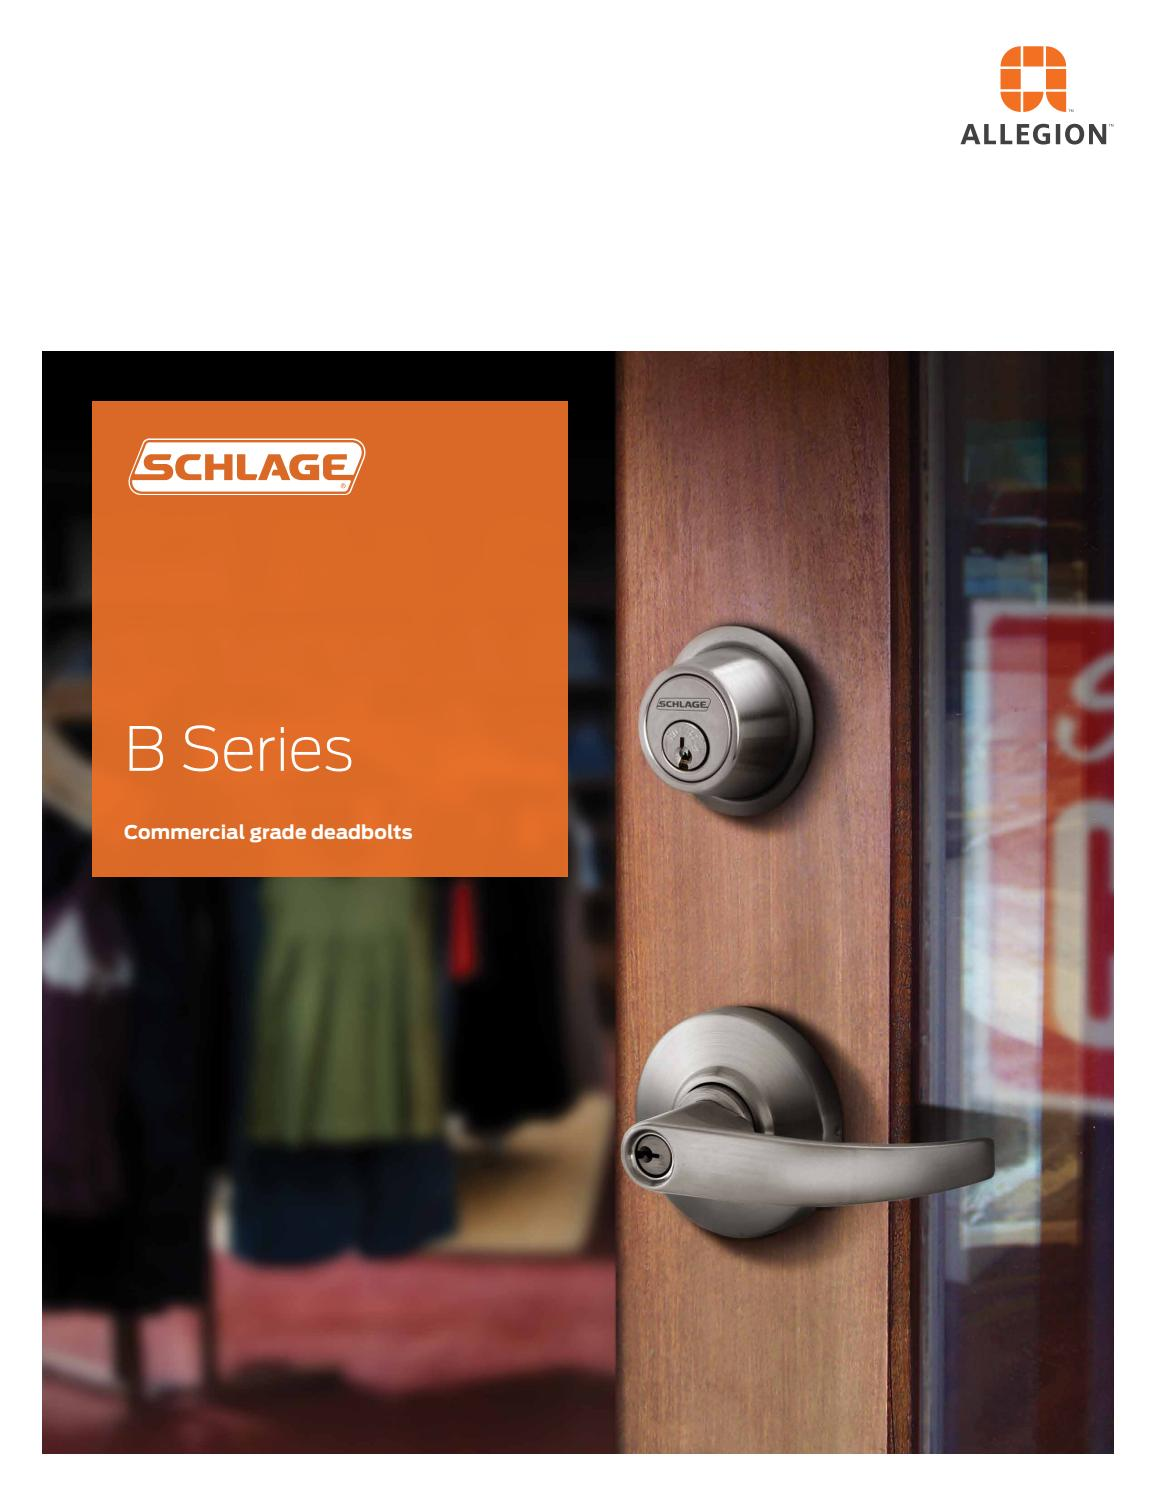 C Keyway Bright Brass Finish Schlage B562P 605 C Keyway Series B500 Grade 2 Deadbolt Lock Double Cylinder Function